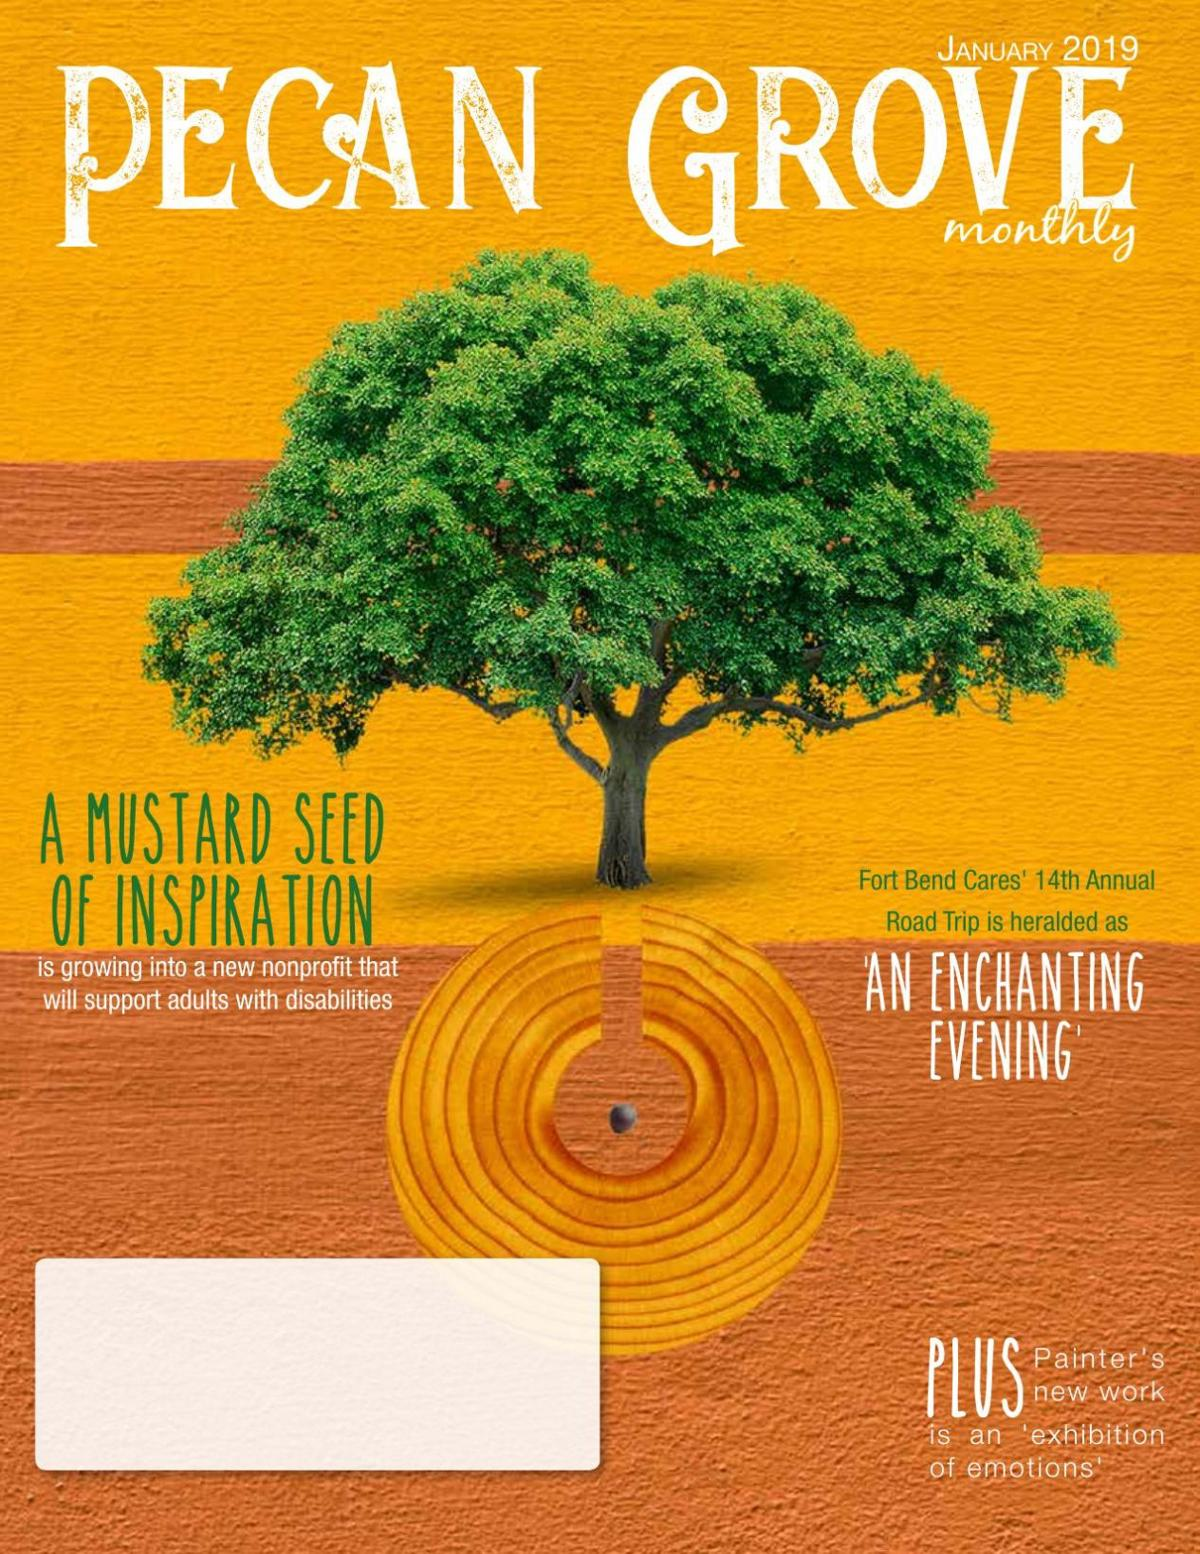 Pecan Grove Monthly: January 2019